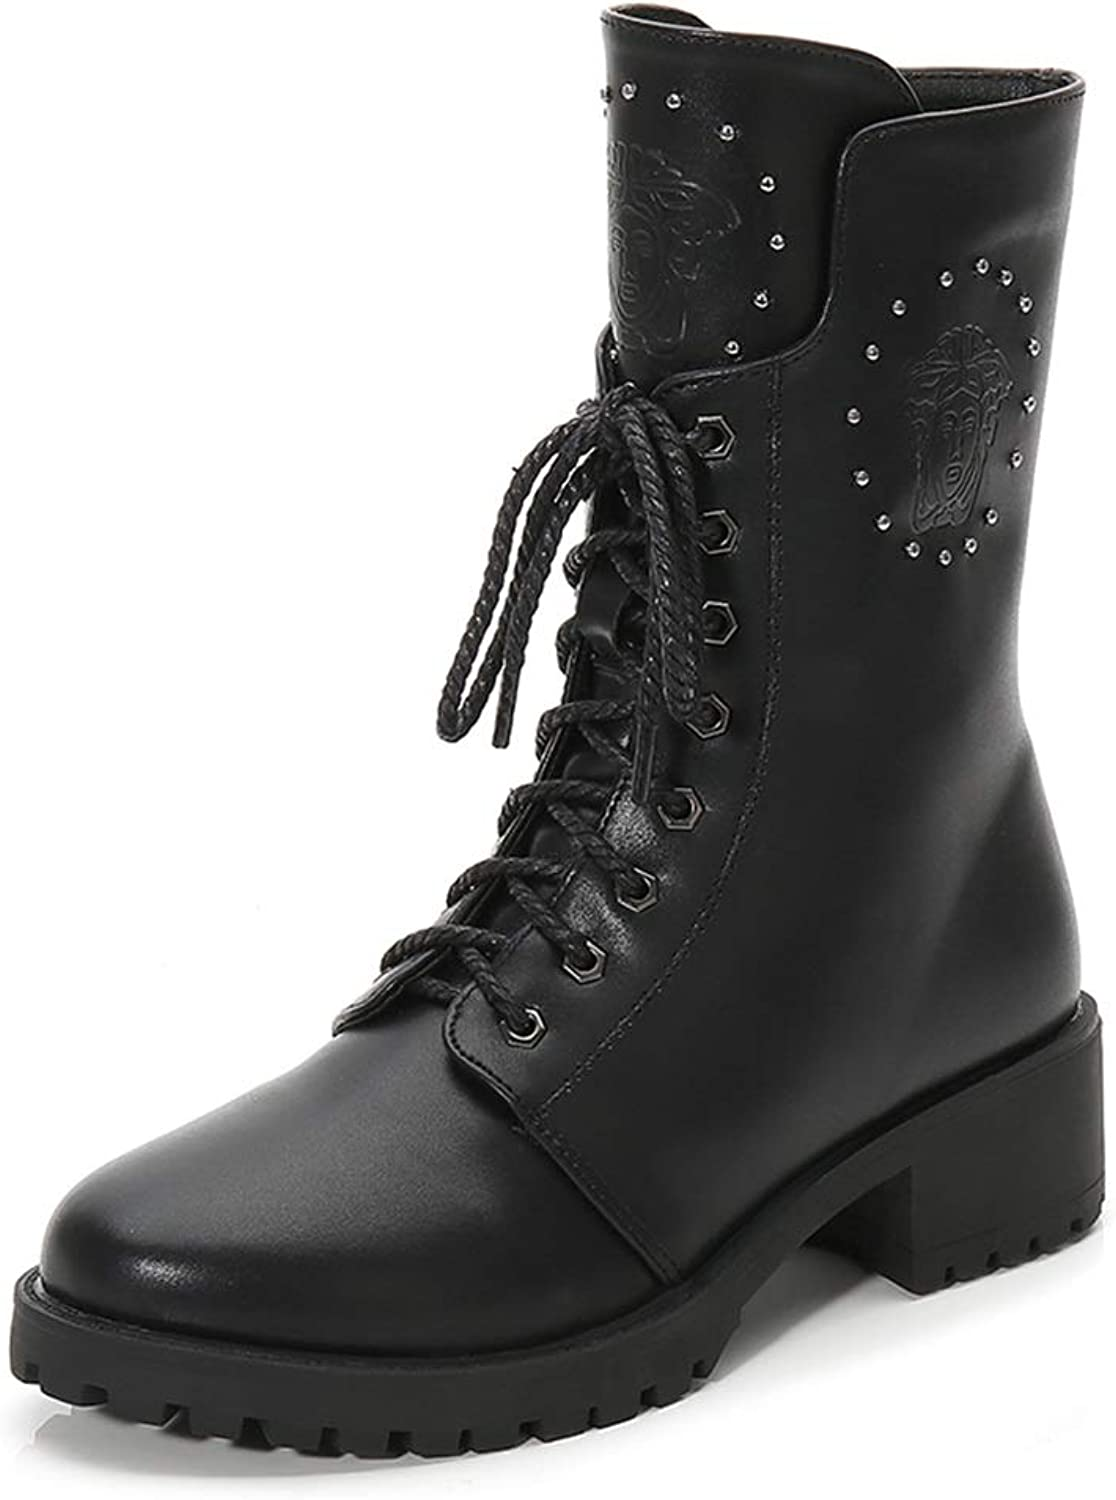 Ladies Women Calf Biker Boots Lace Up Casual Boots Autumn and Winter New Locomotive Martin Boots with Thick with Fashion Rivets in The Boots Plus Velvet Size